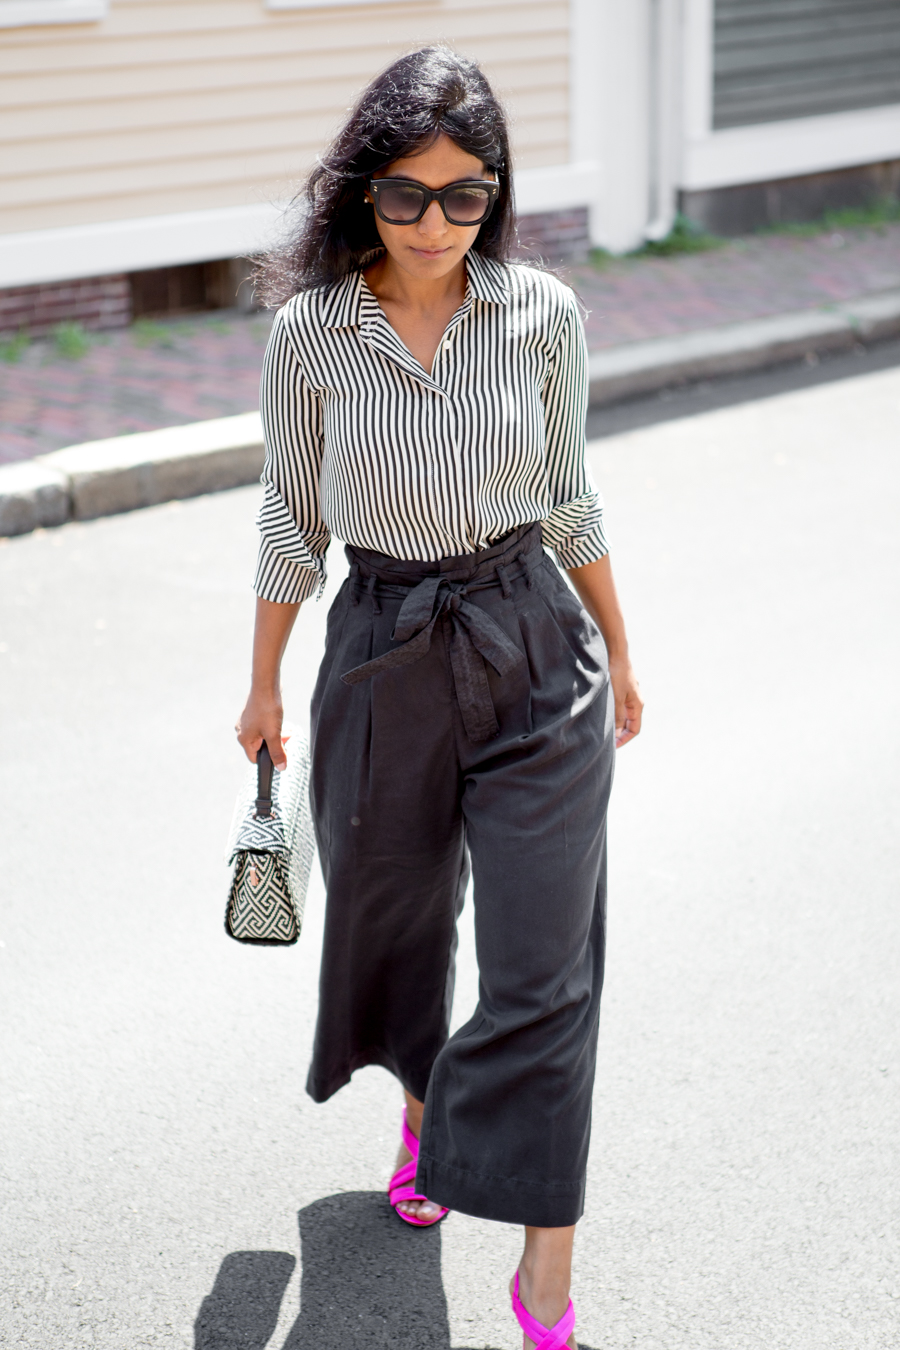 nordstrom anniversary sale, paper-bag, paper bag pants, palazzo pants, summer style, summer pants, work style, work outfit, business casual, satin sandals, ted baker, zara, nordstrom, affordable style, petite blogger, fashion blog, 40plusstyle, trendy, neutrals, officestyle